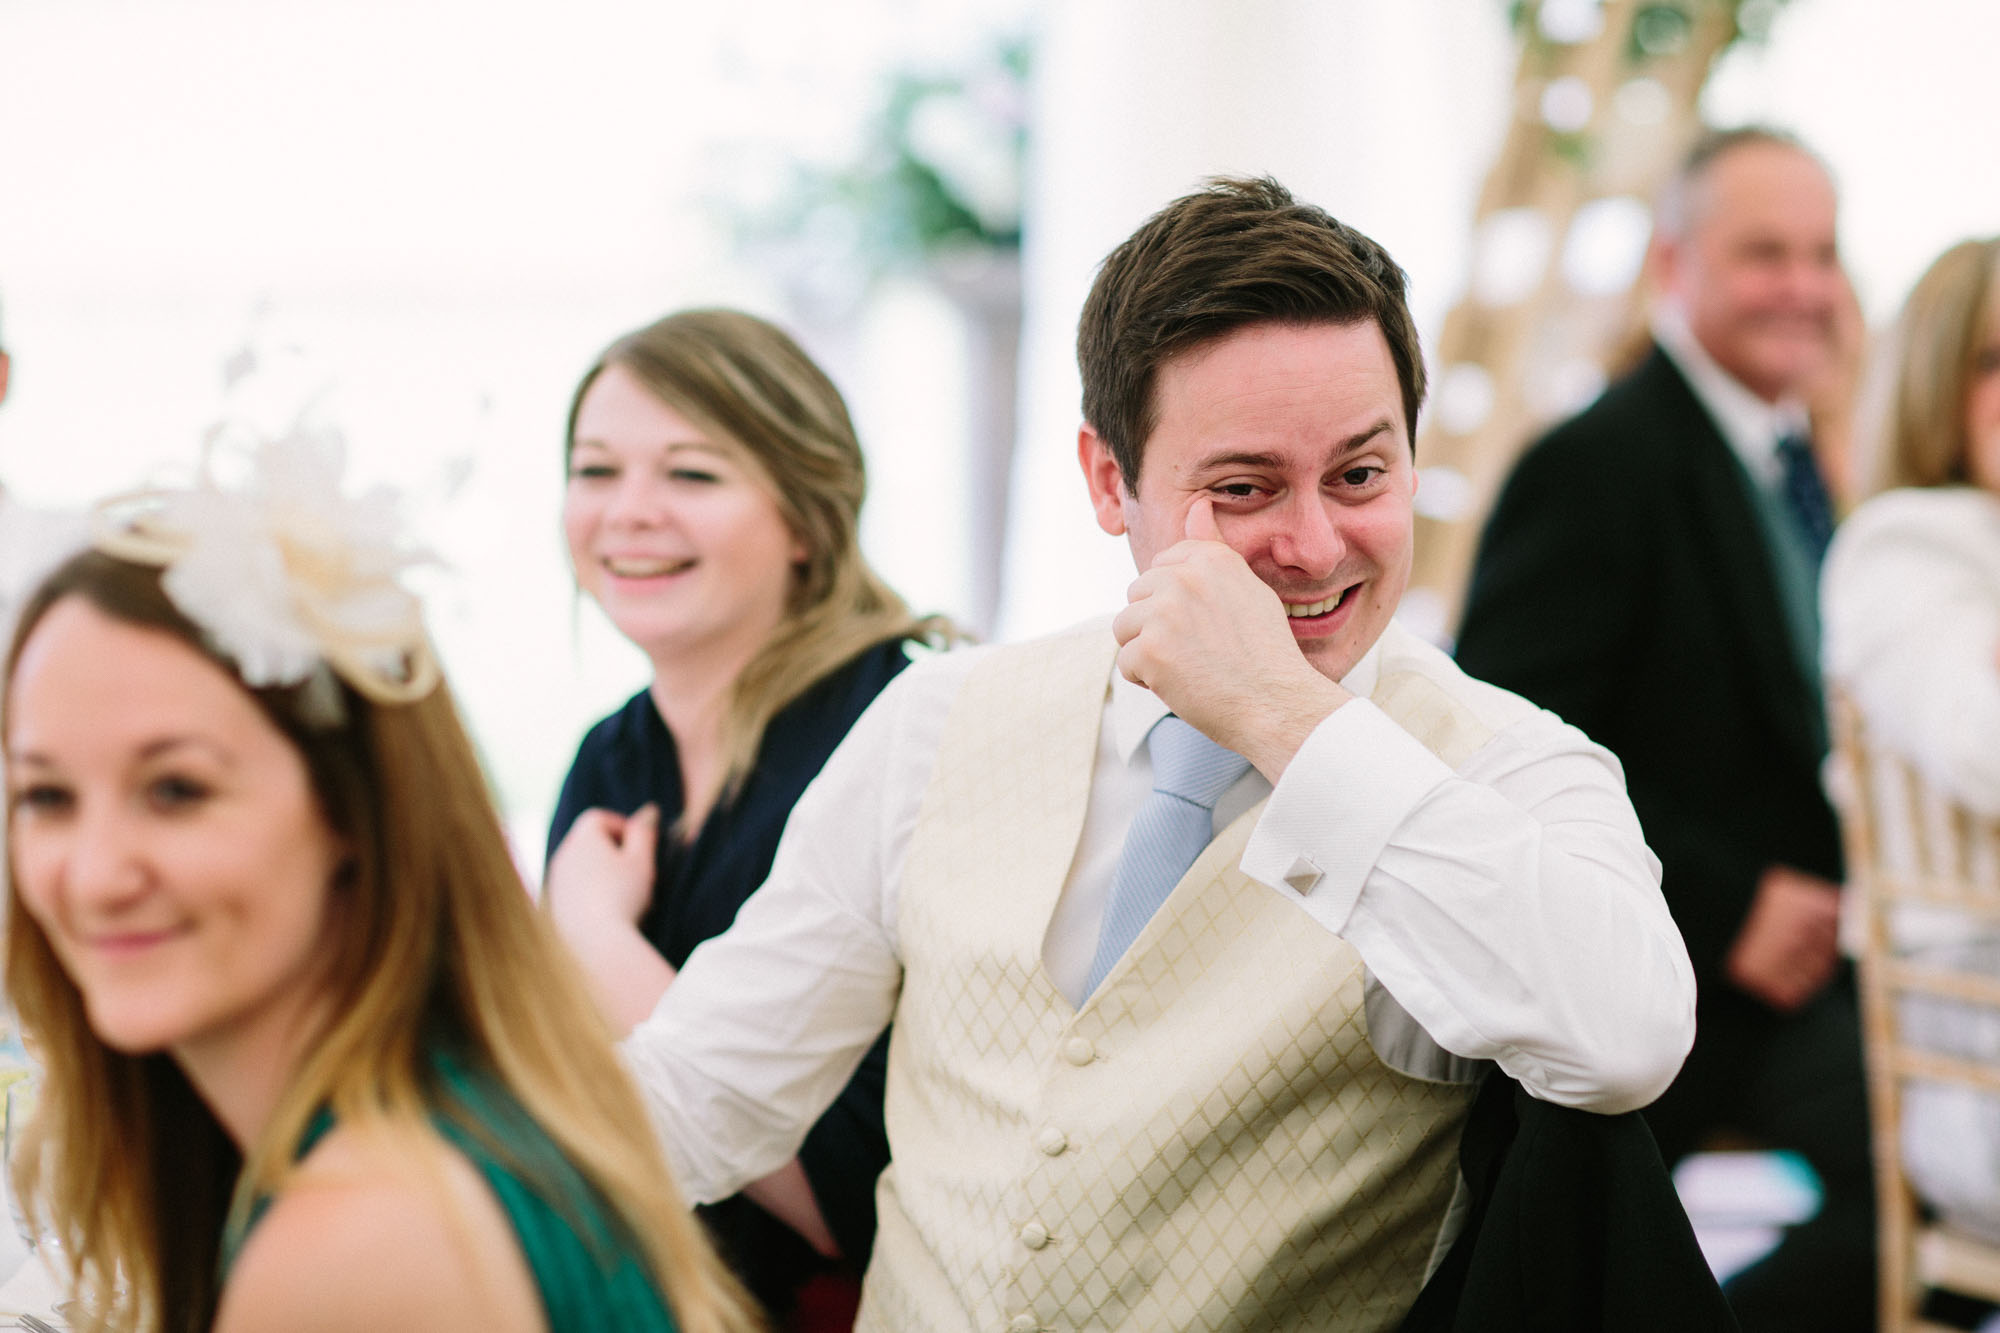 Male wedding guest crying with laughter during grooms speech